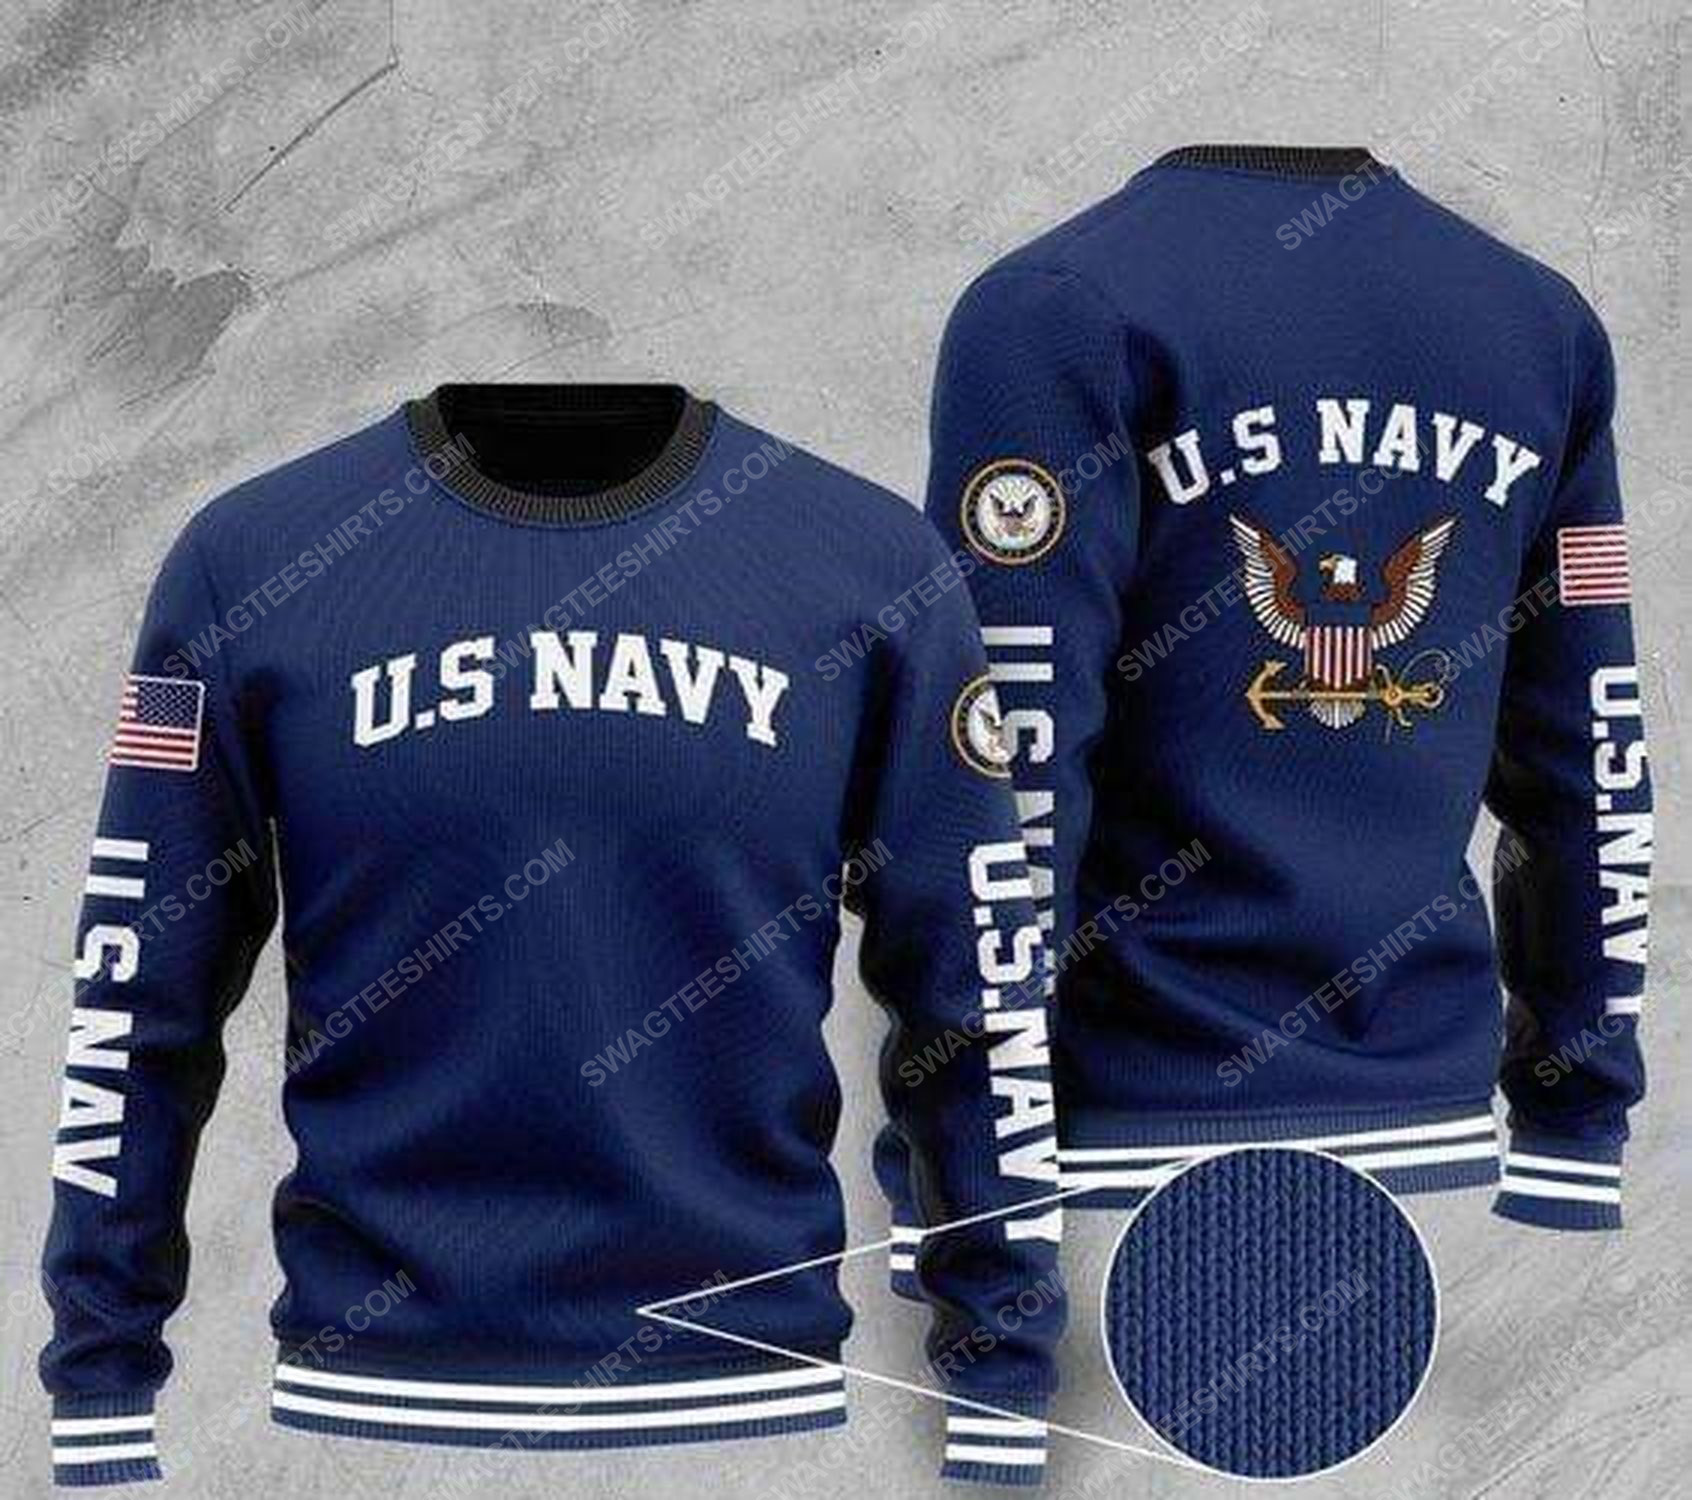 United states navy all over print ugly christmas sweater 1 - Copy - Copy